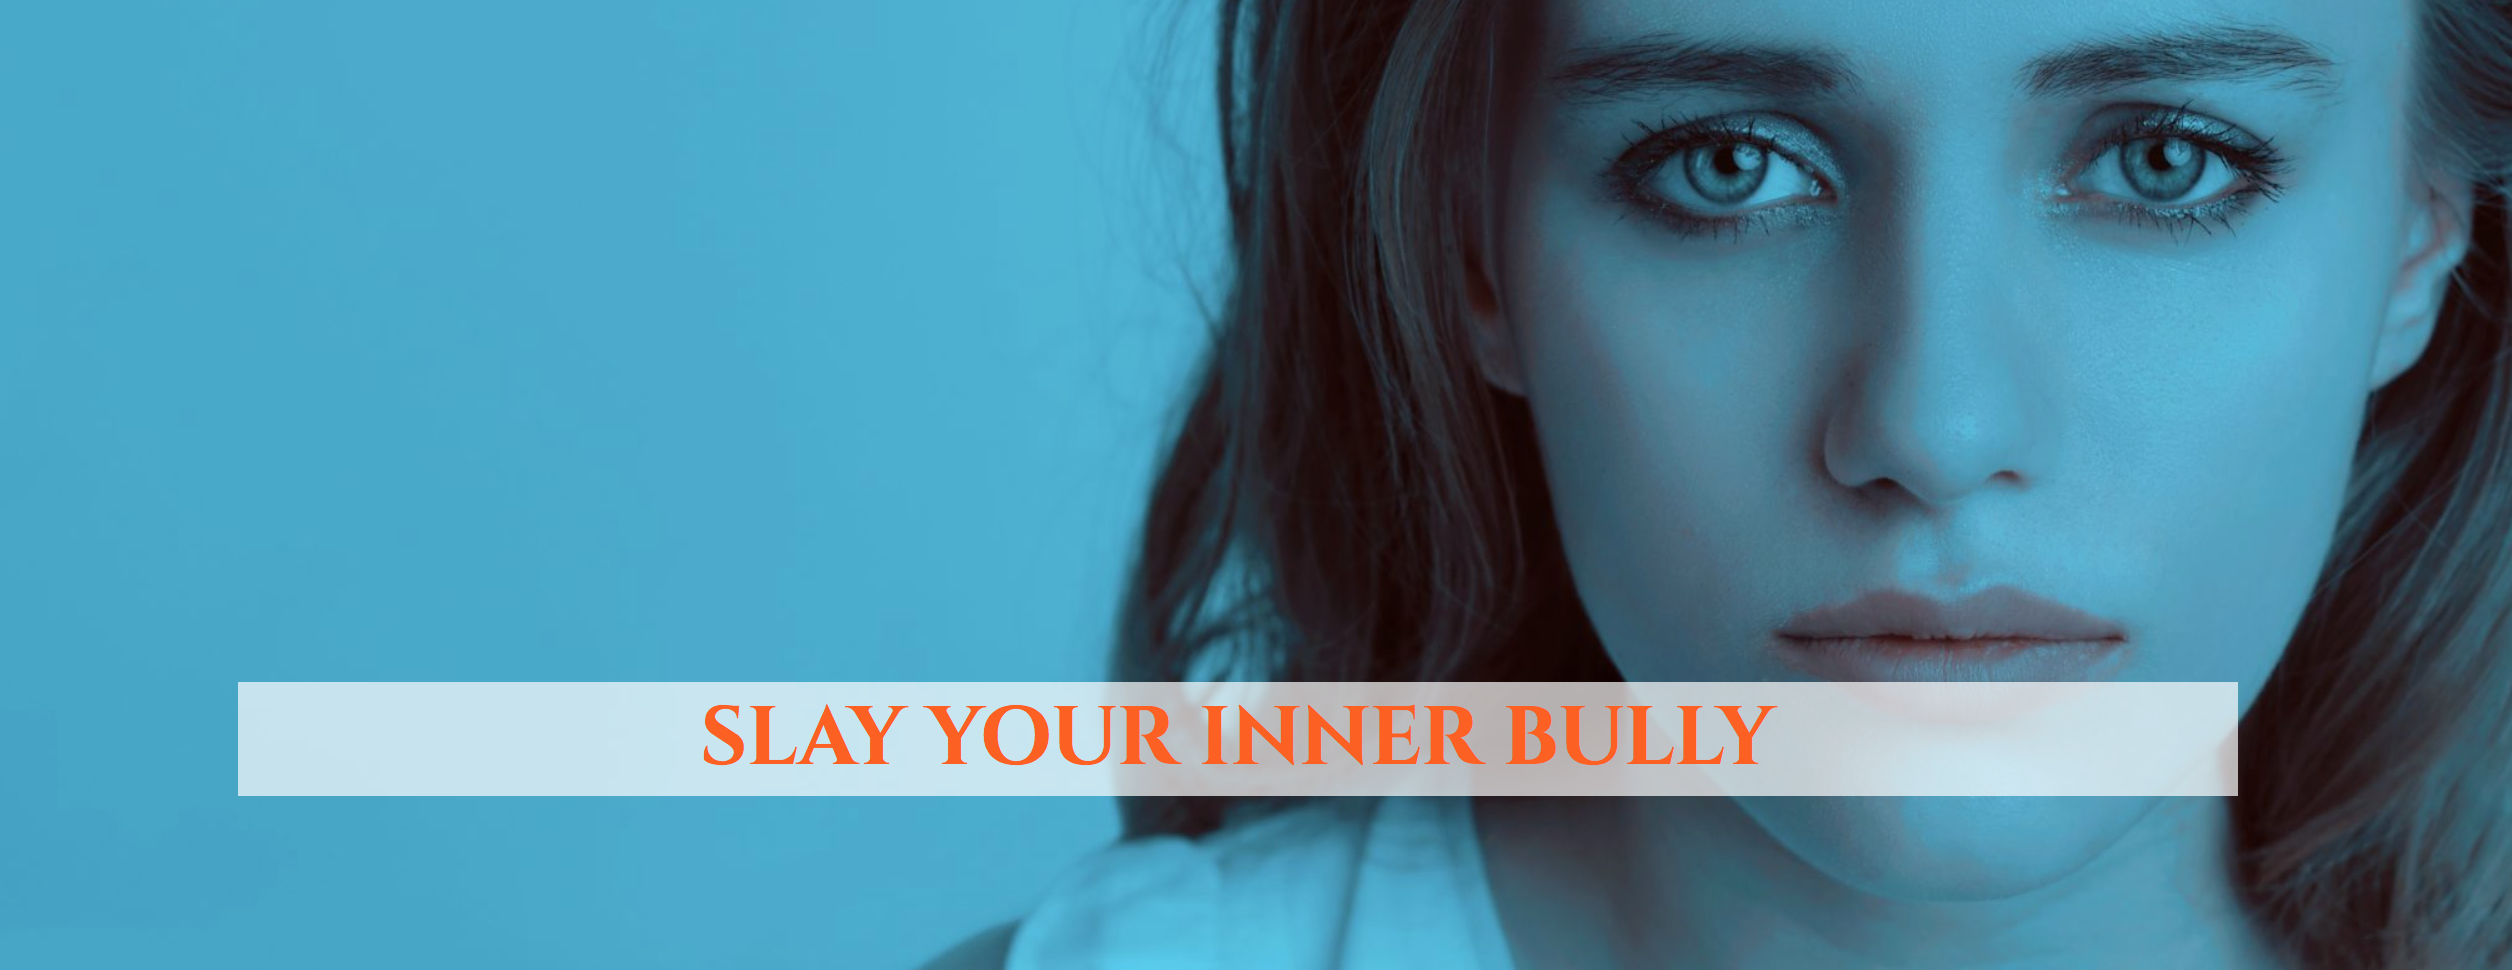 Learn To Slay Your Inner Bully